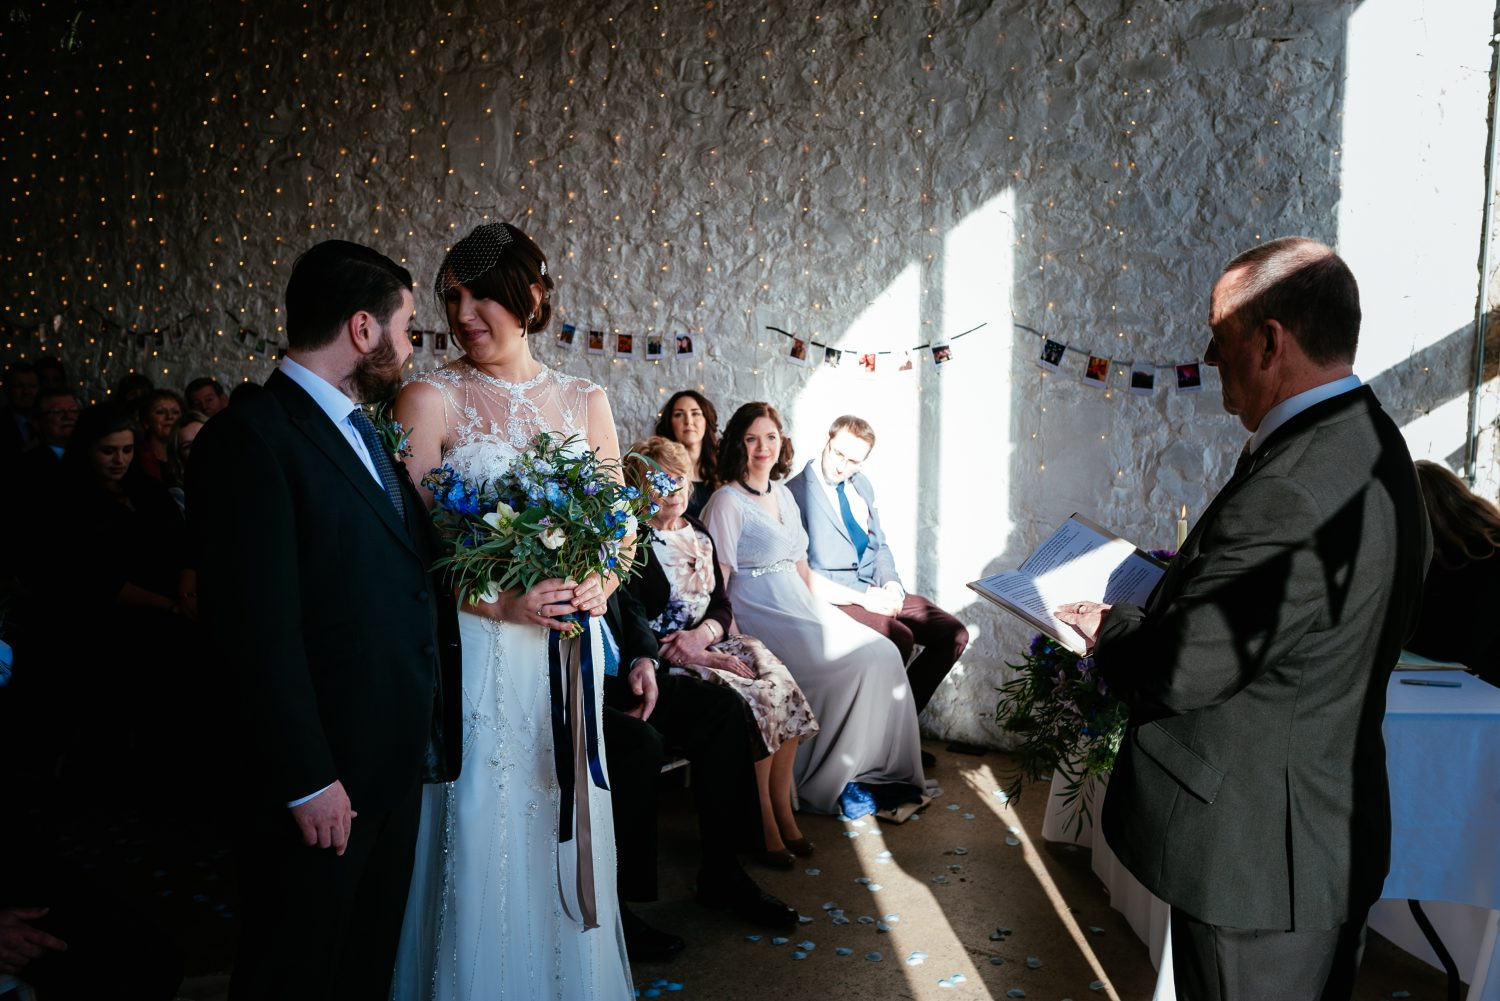 Ceremonies in the Farmer's Barn benefit from beautiful natural sunlight